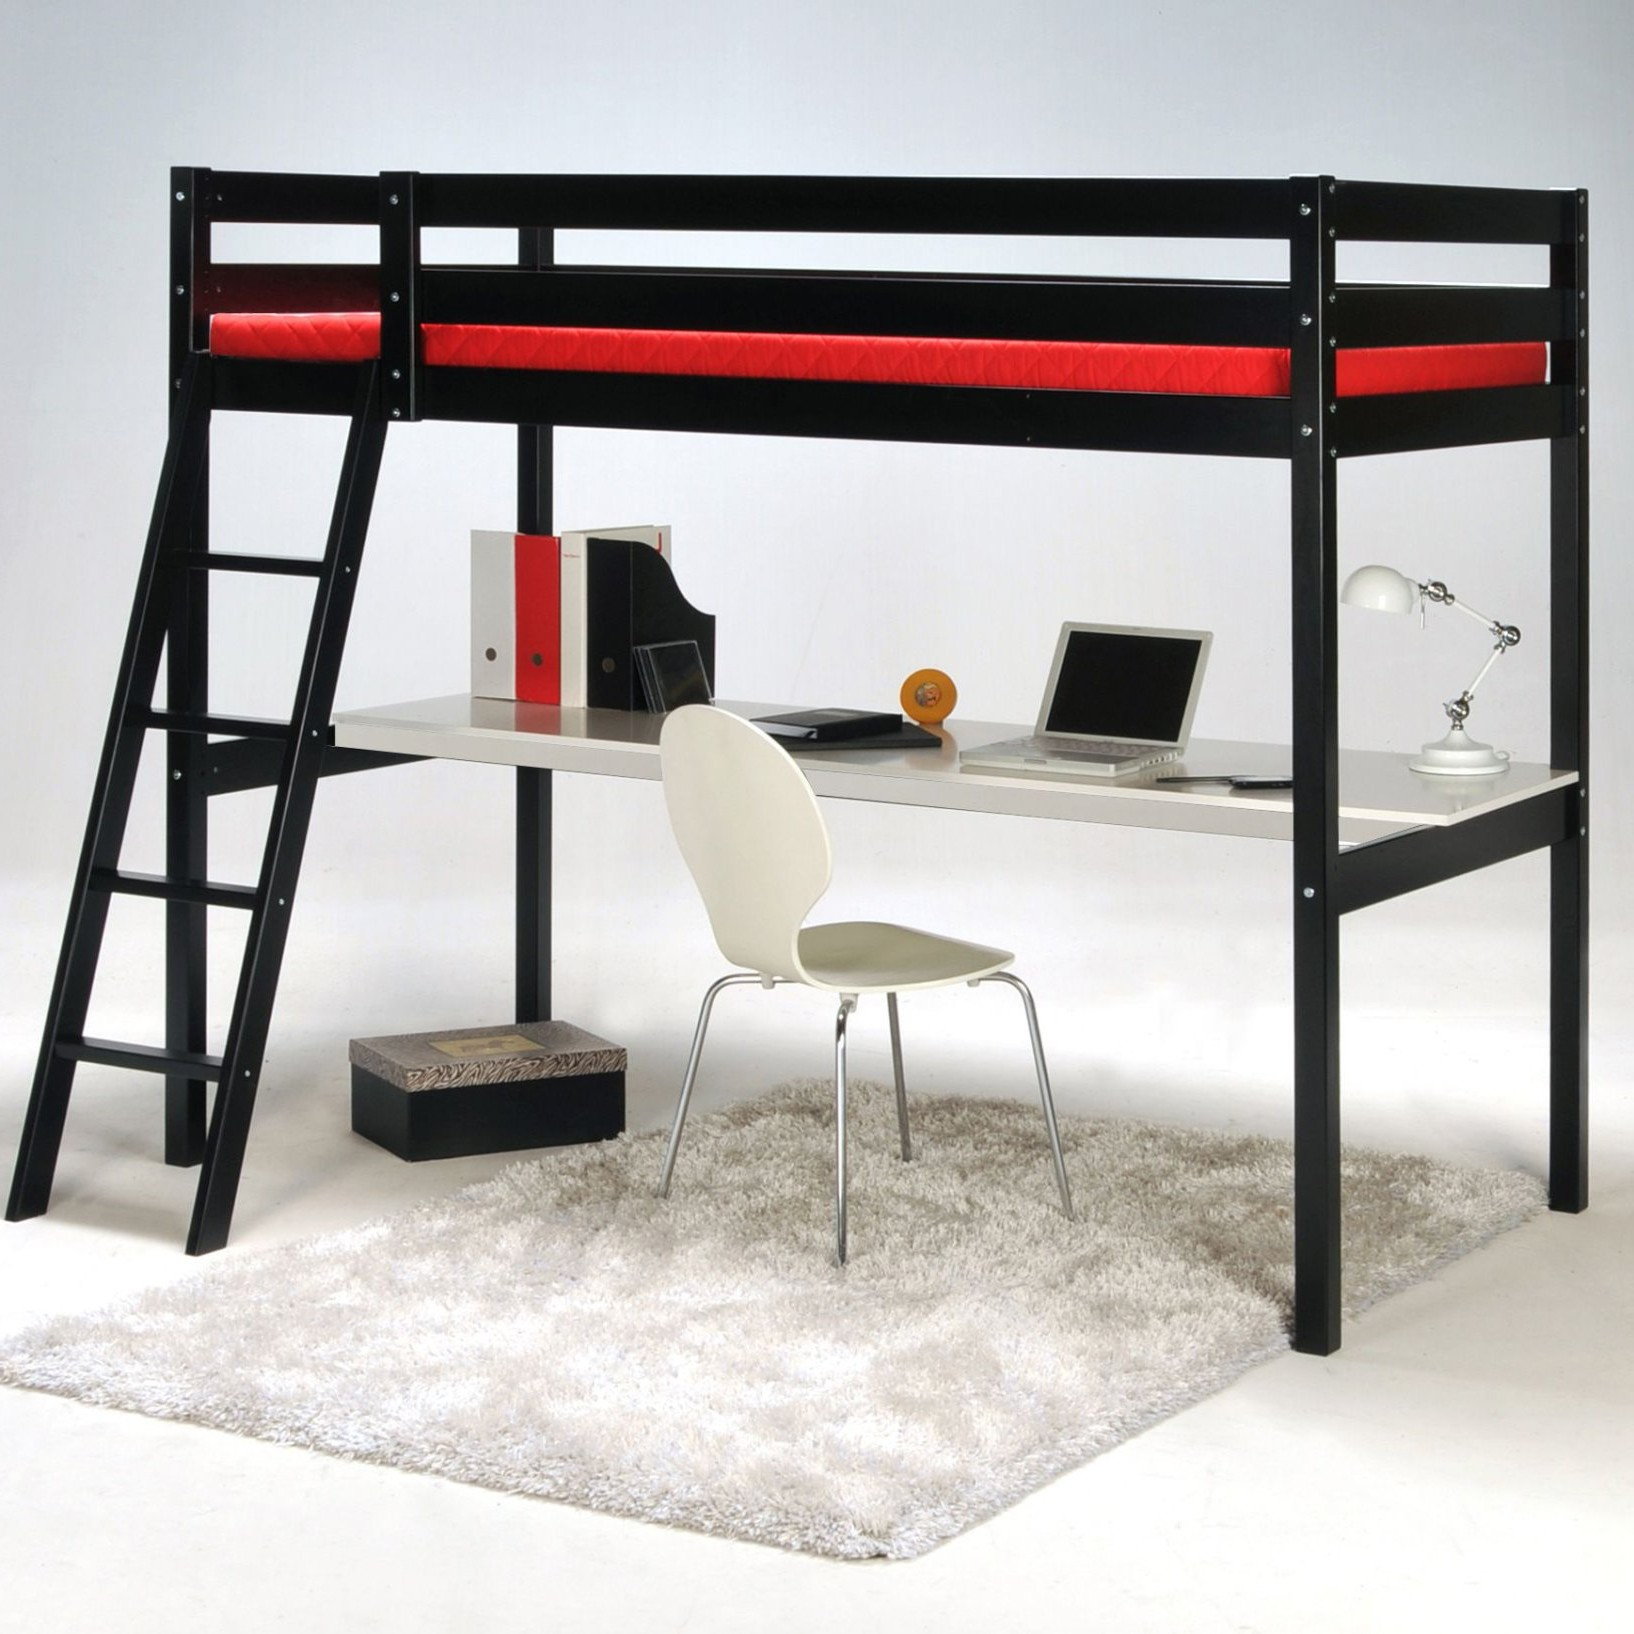 lit mezzanine bois 2 places lit mezzanine places en bois avec plateforme favoris alerte prix. Black Bedroom Furniture Sets. Home Design Ideas